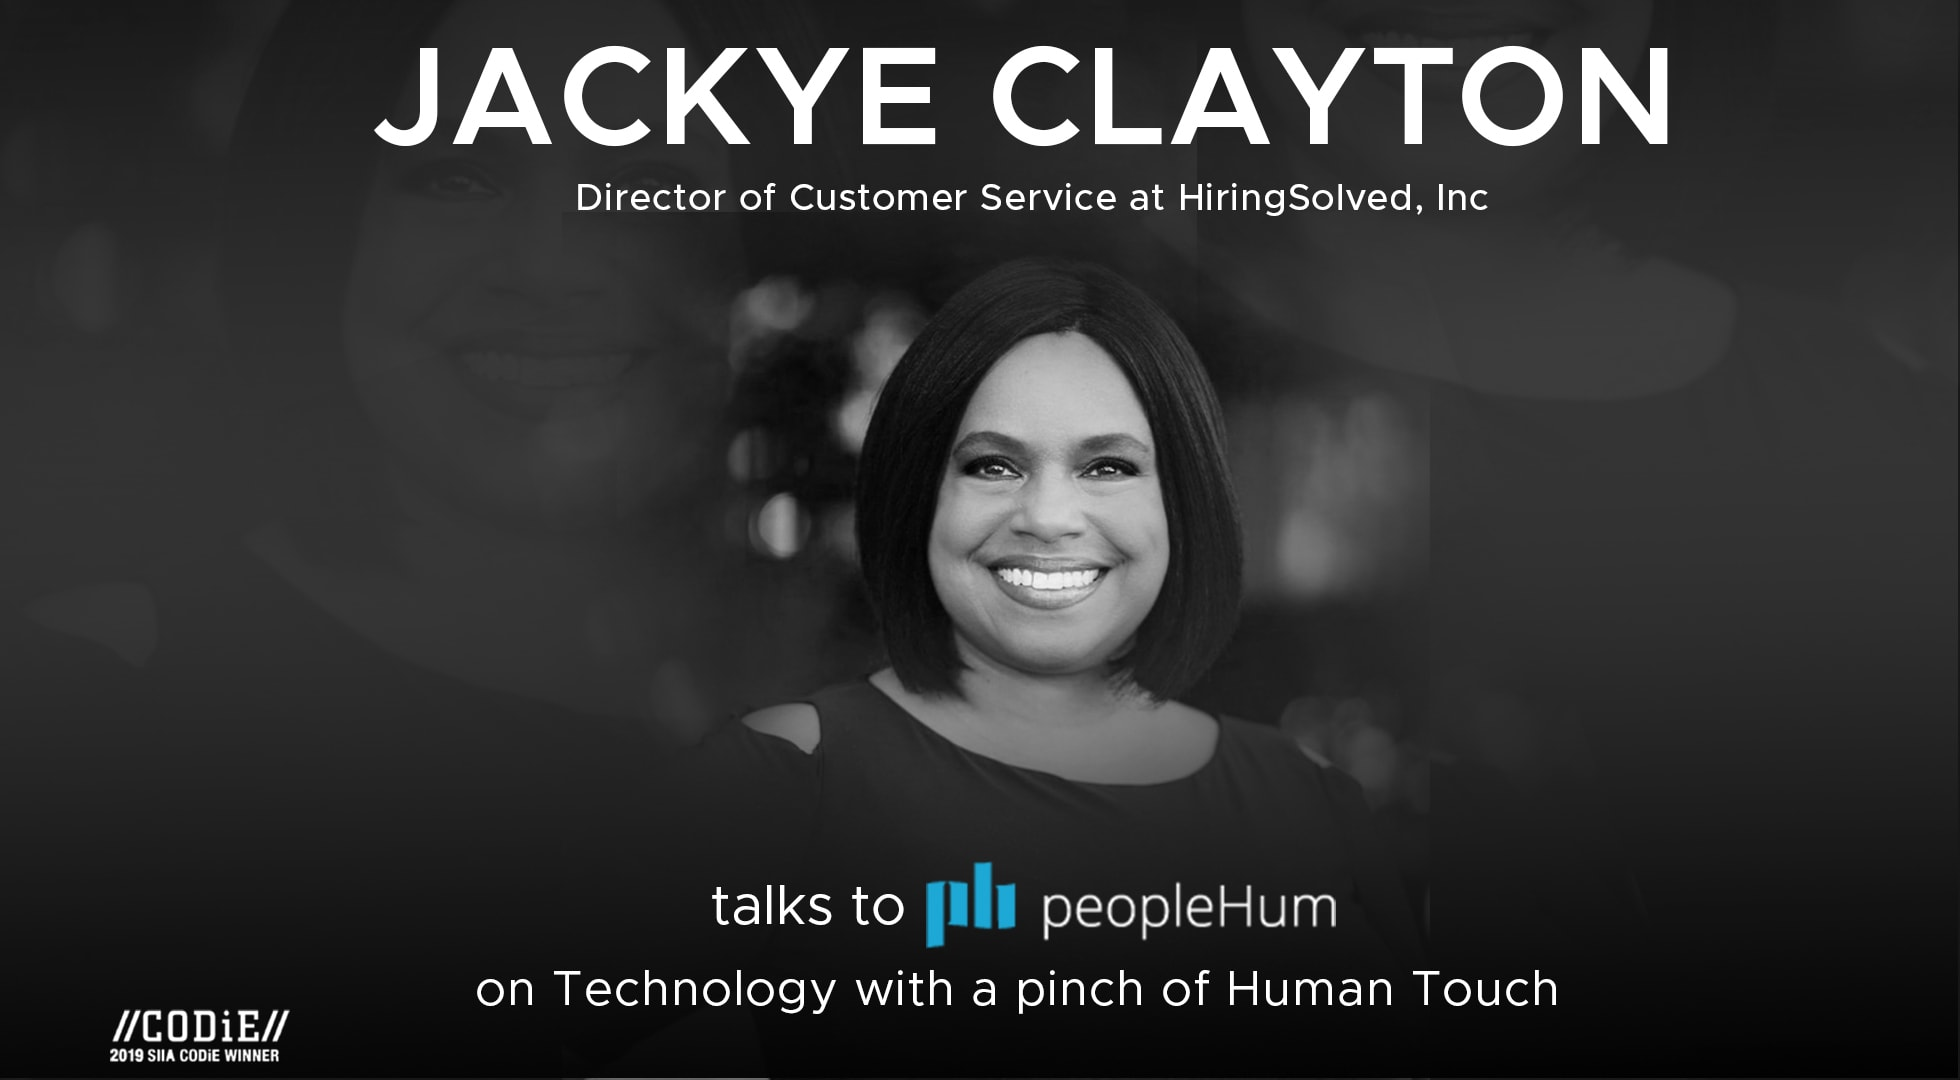 Technology with a pinch of human touch - Jackye Clayton [Interview]